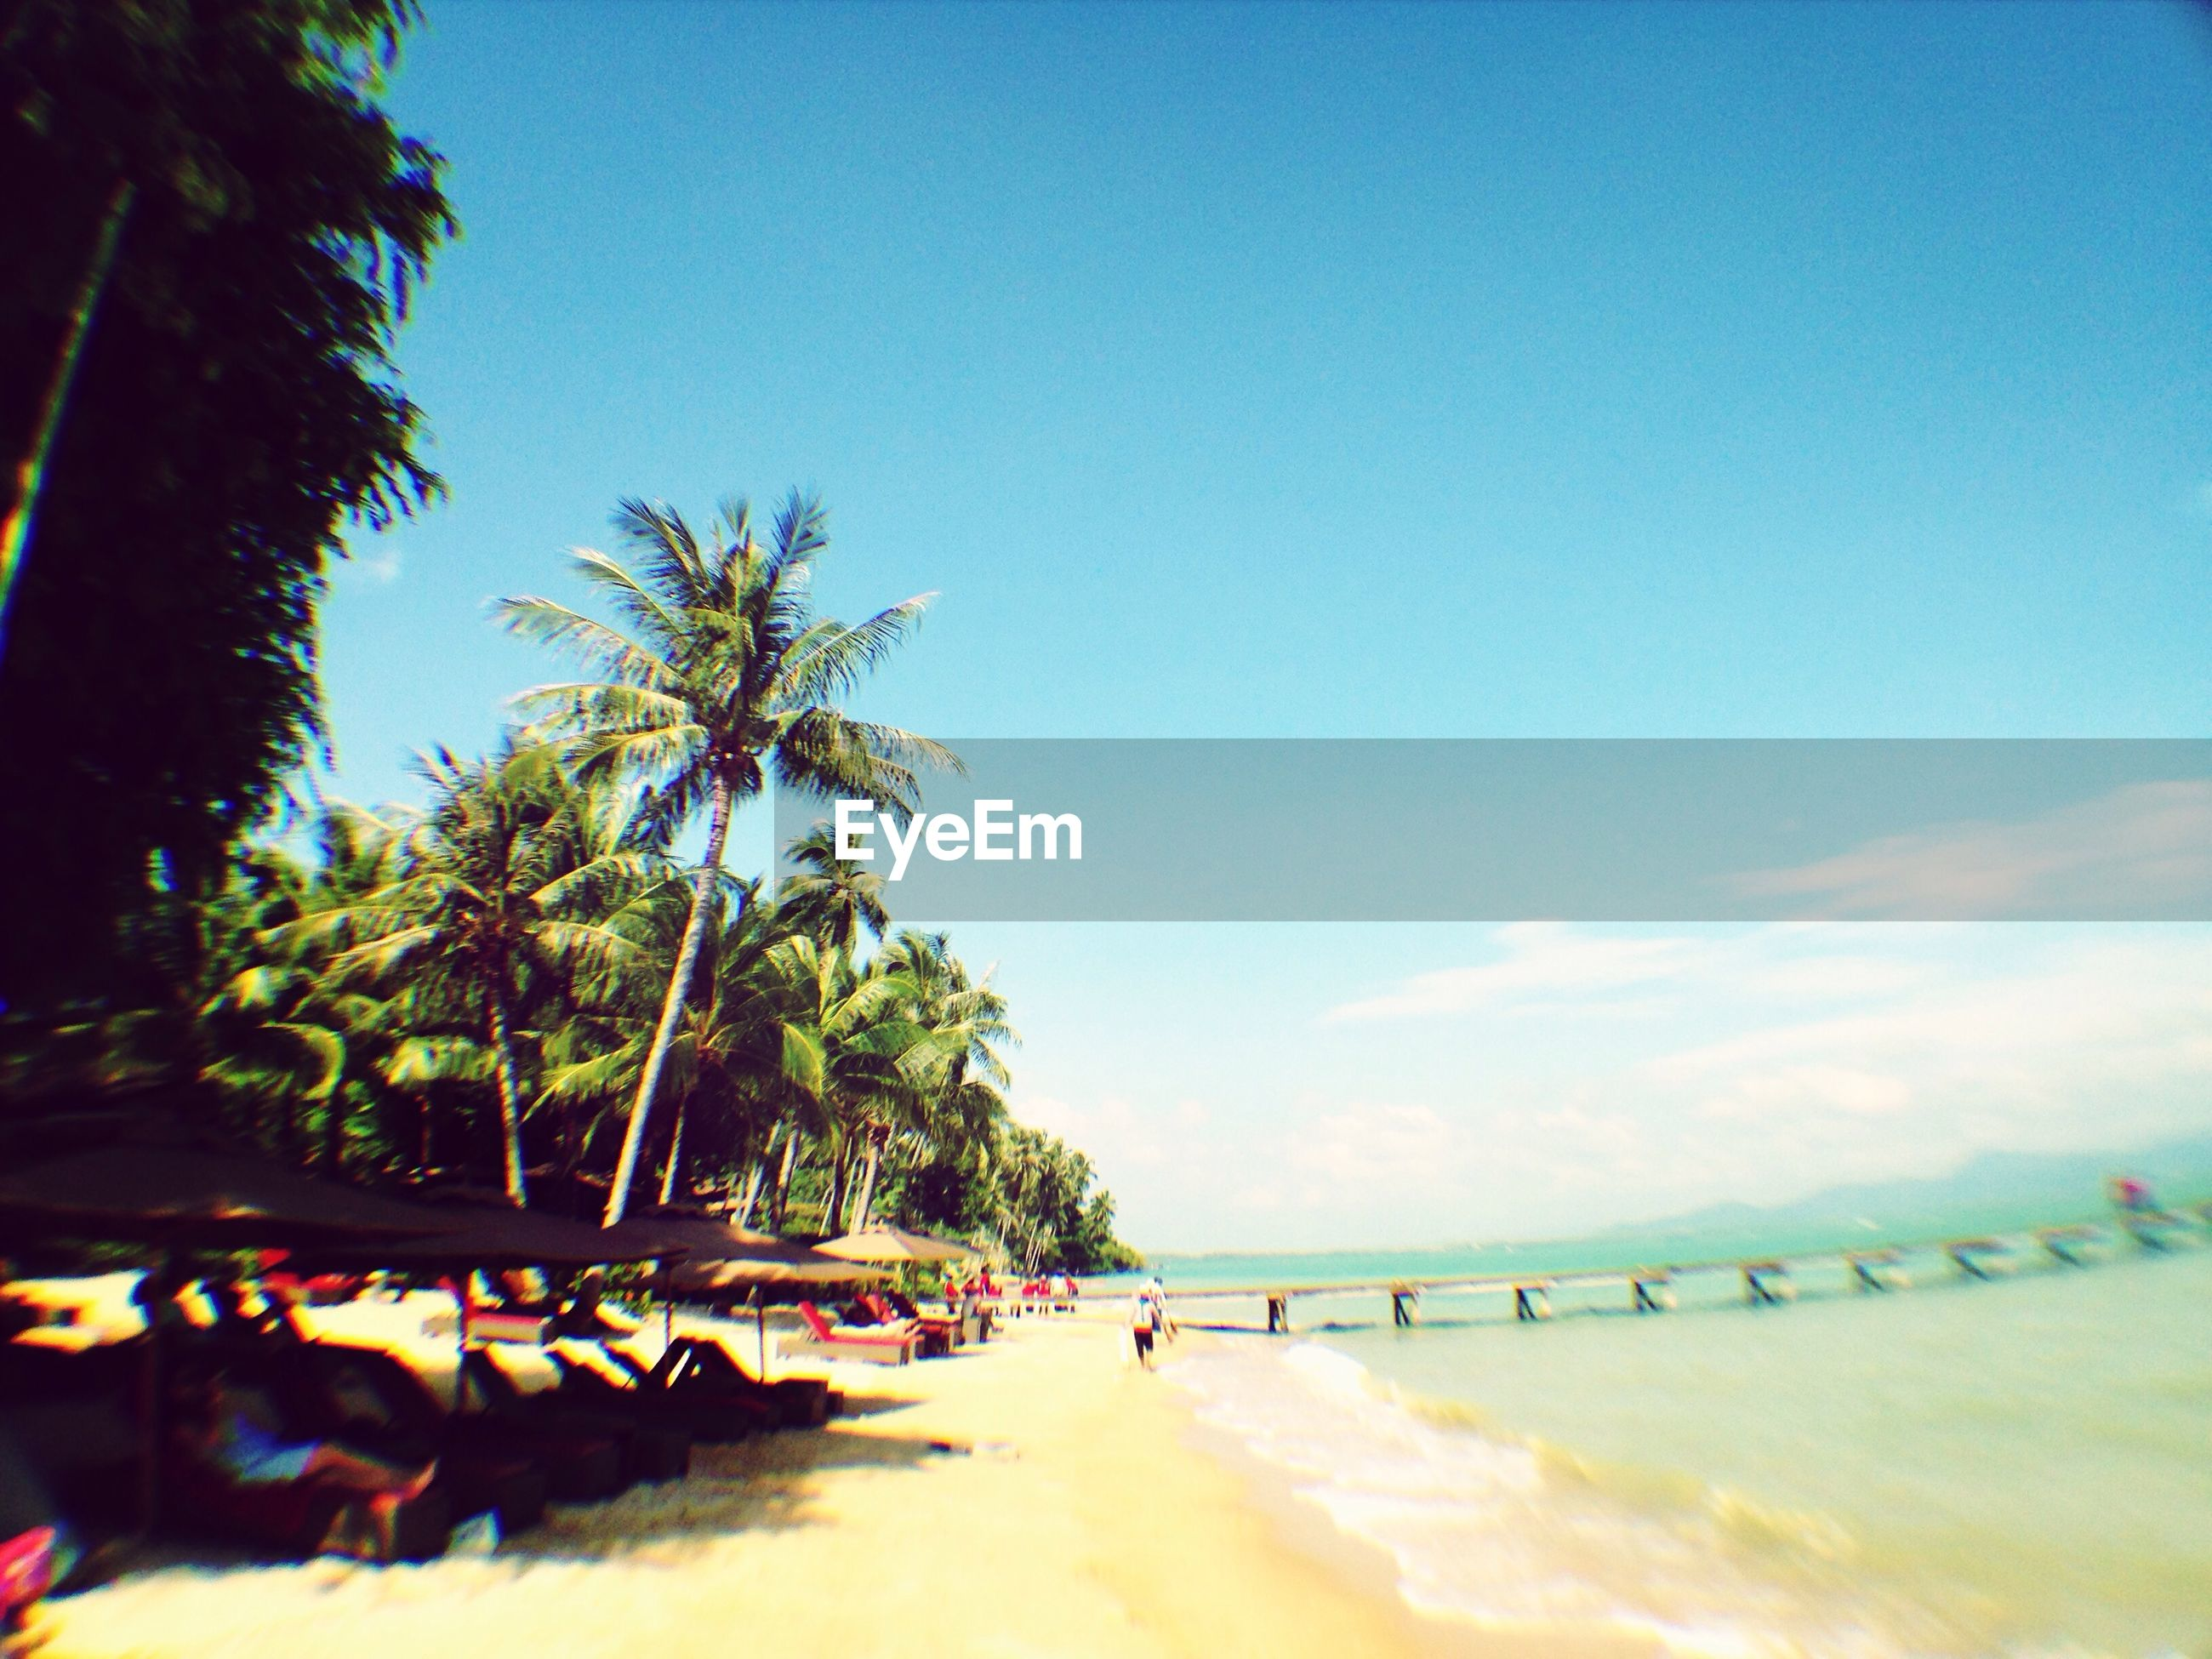 tree, beach, lifestyles, leisure activity, sky, men, sea, tranquility, water, nature, tranquil scene, person, walking, scenics, beauty in nature, blue, sand, shore, vacations